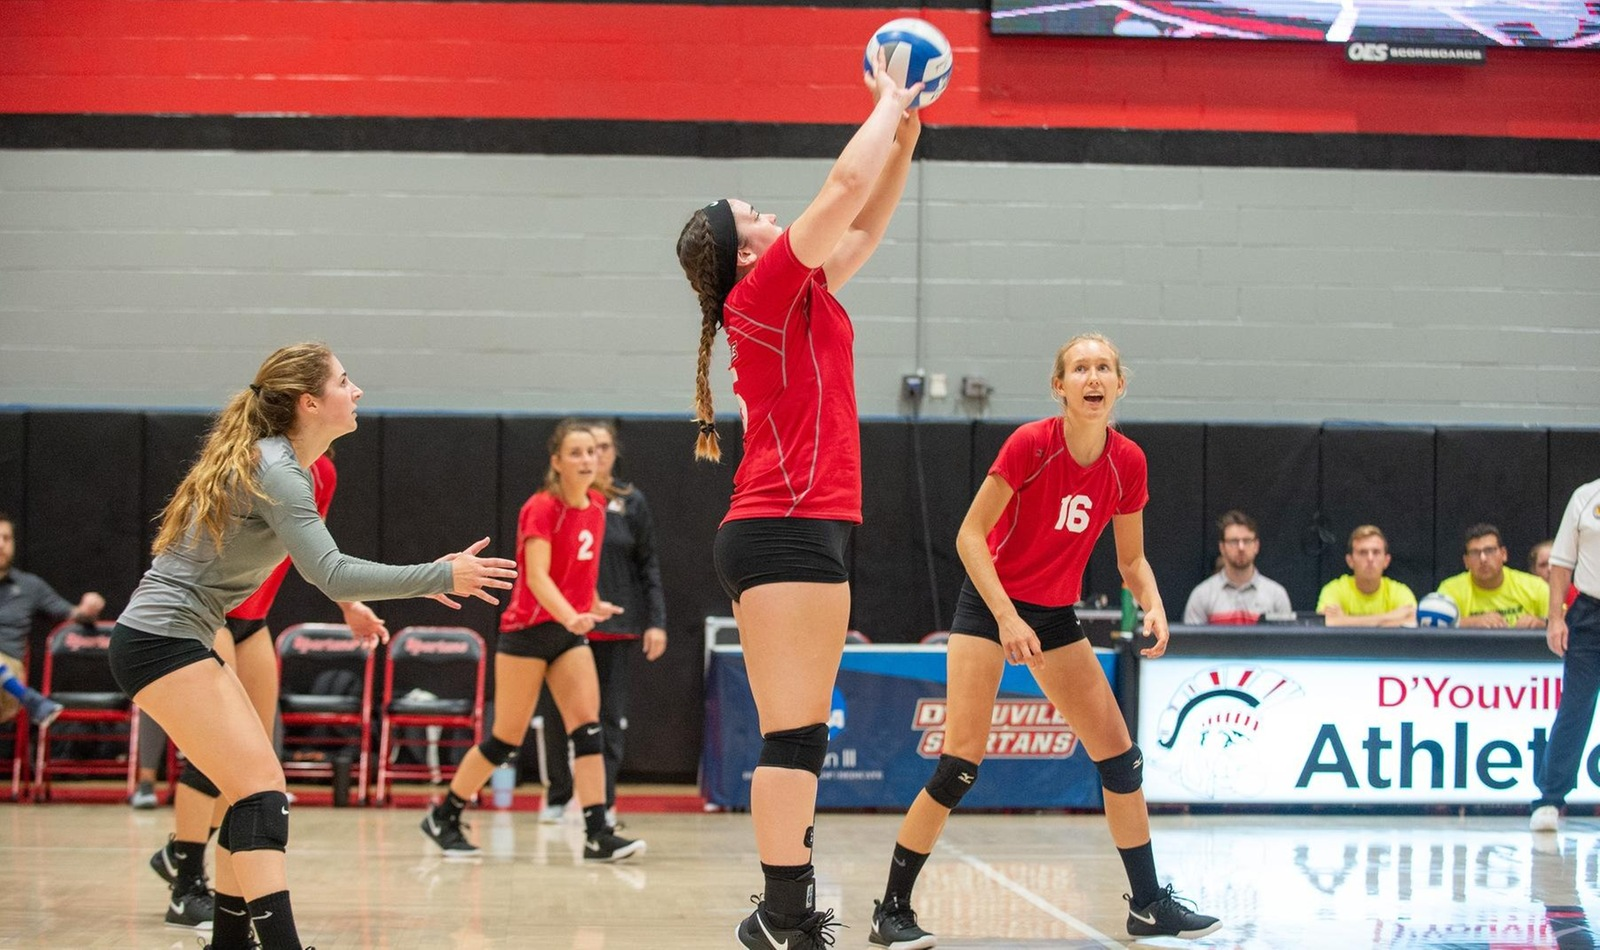 Spartans Battle Hard in Non-Conference Match against Brockport